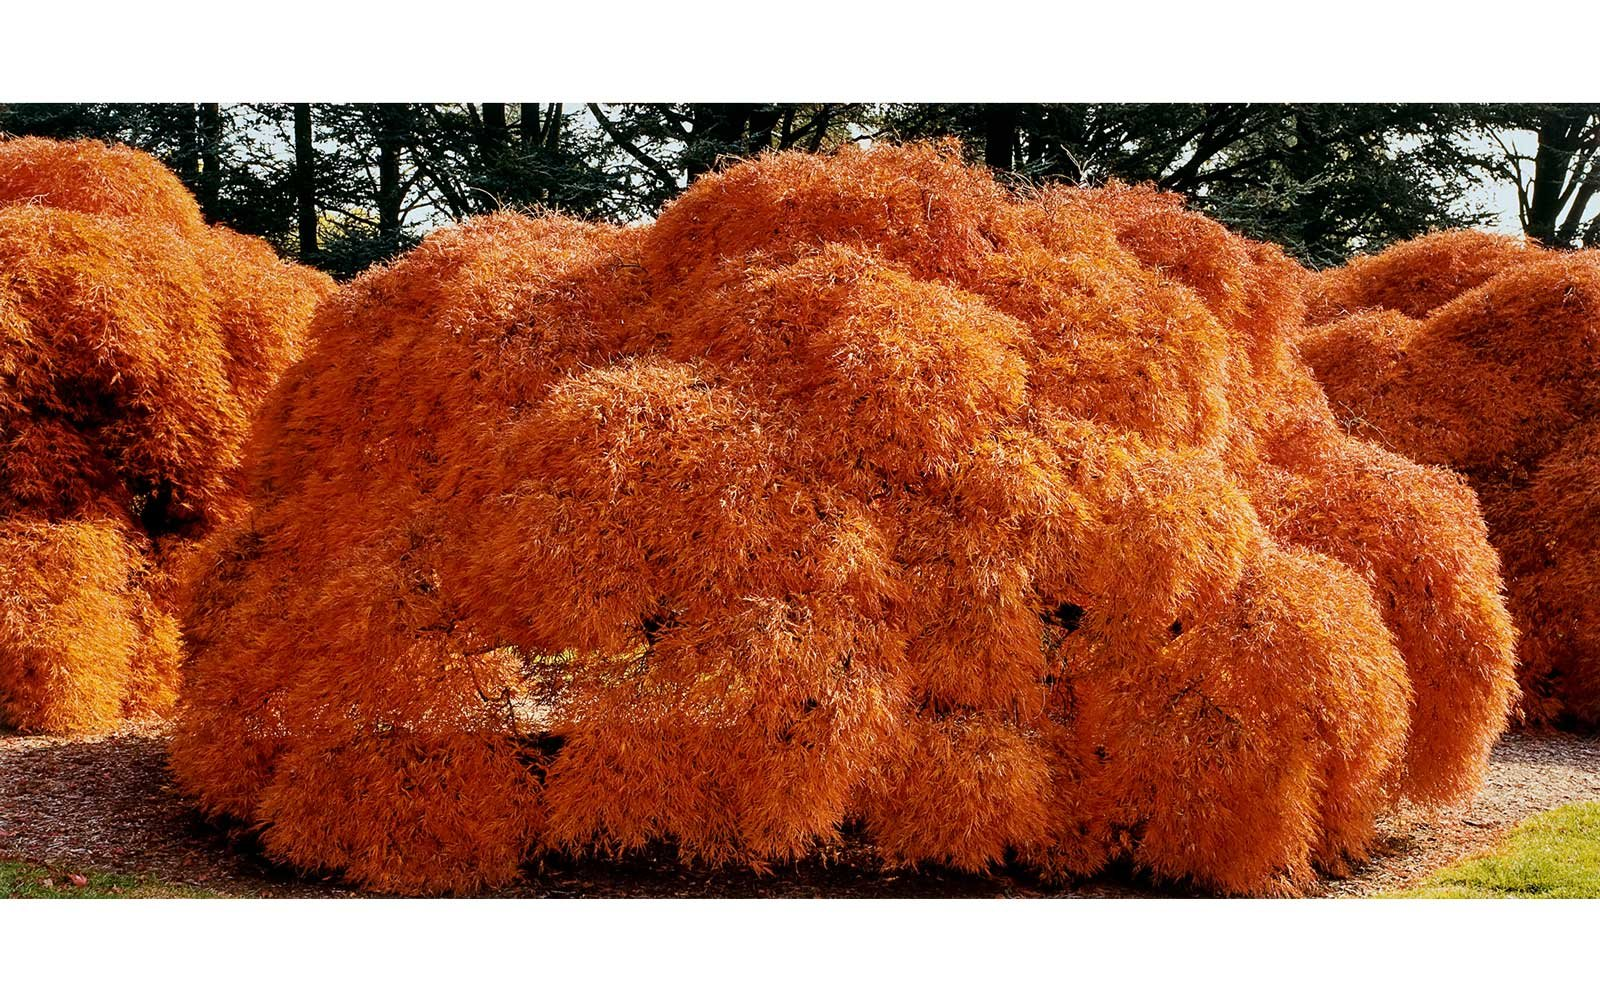 John Pfahl, Threadleaf Japanese Maple Tree, Hershey Gardens, Pennsylvania, October 1999; from the series Extreme Horticulture